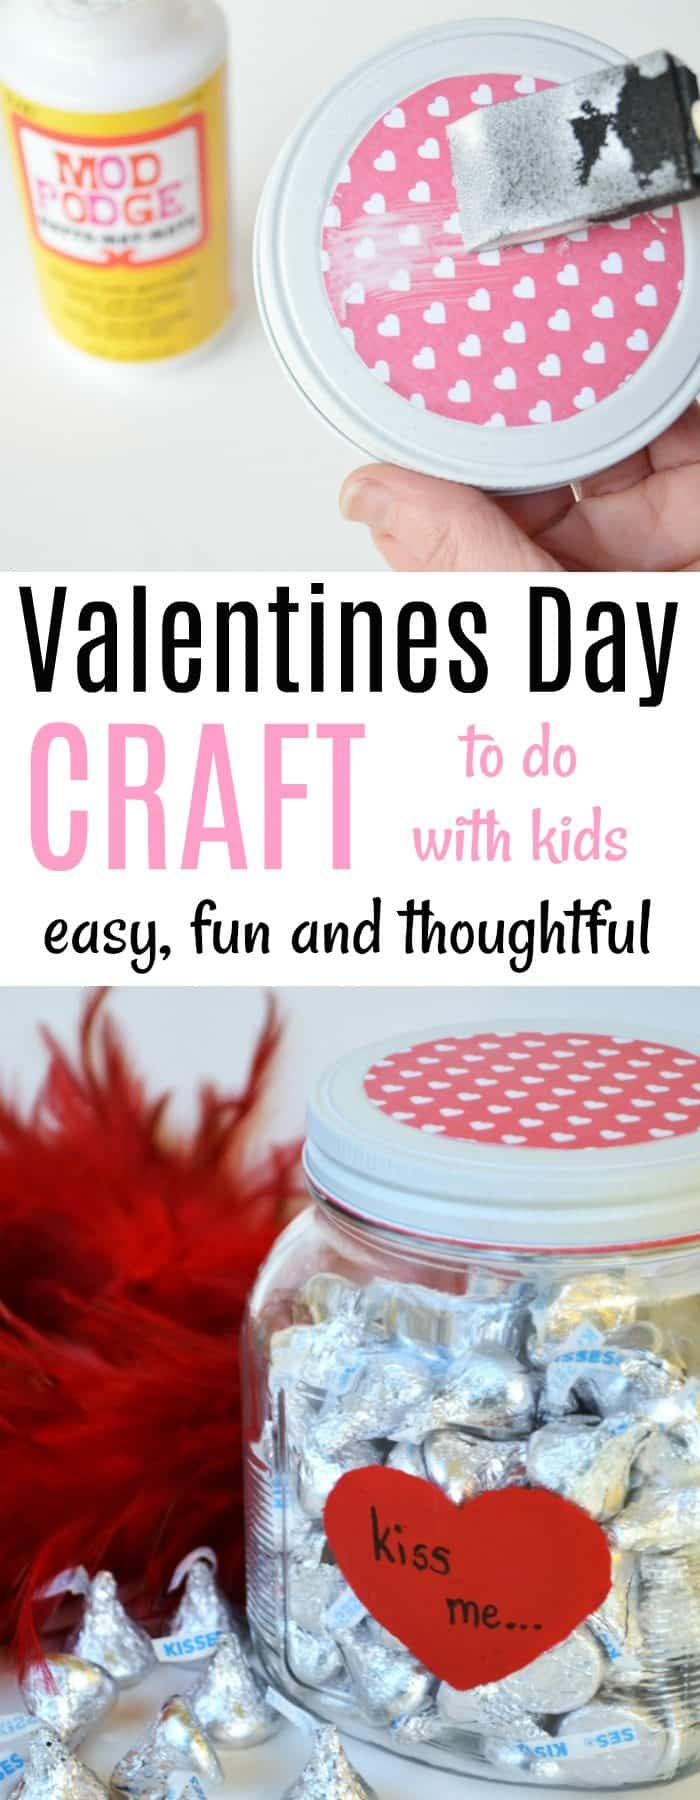 Valentines Day Candy Jar Craft to do with kids that is easy, fun and thoughtful